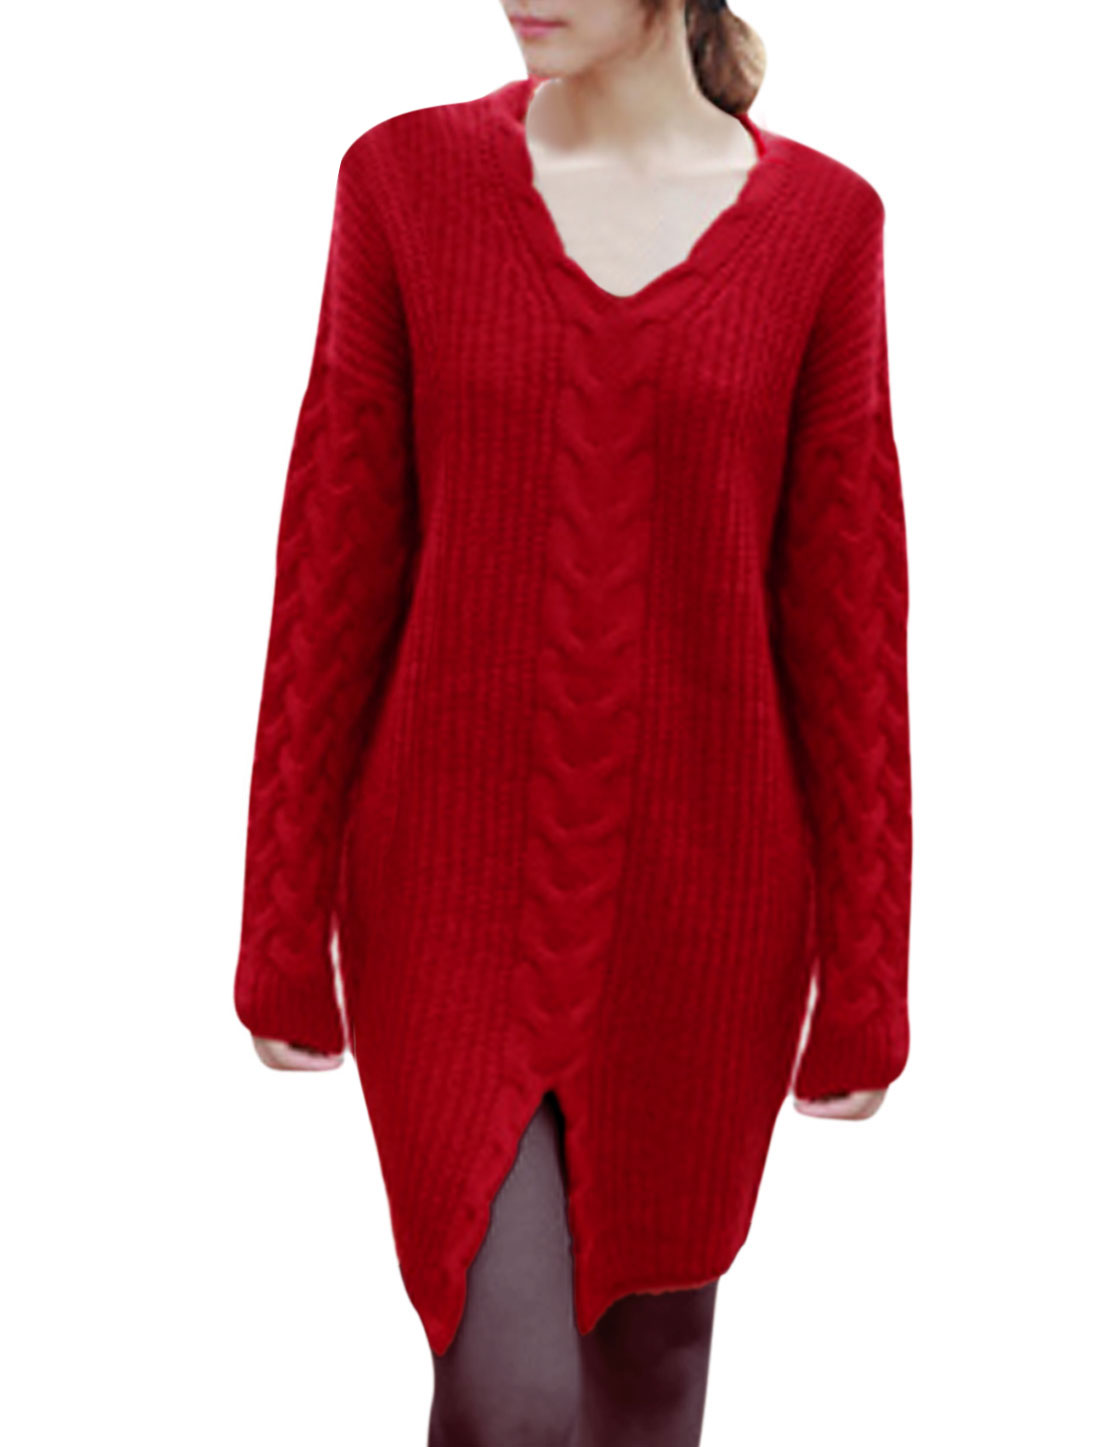 Women V Neck Batwing Sleeves Pullover Casual Tunic Sweater Red M